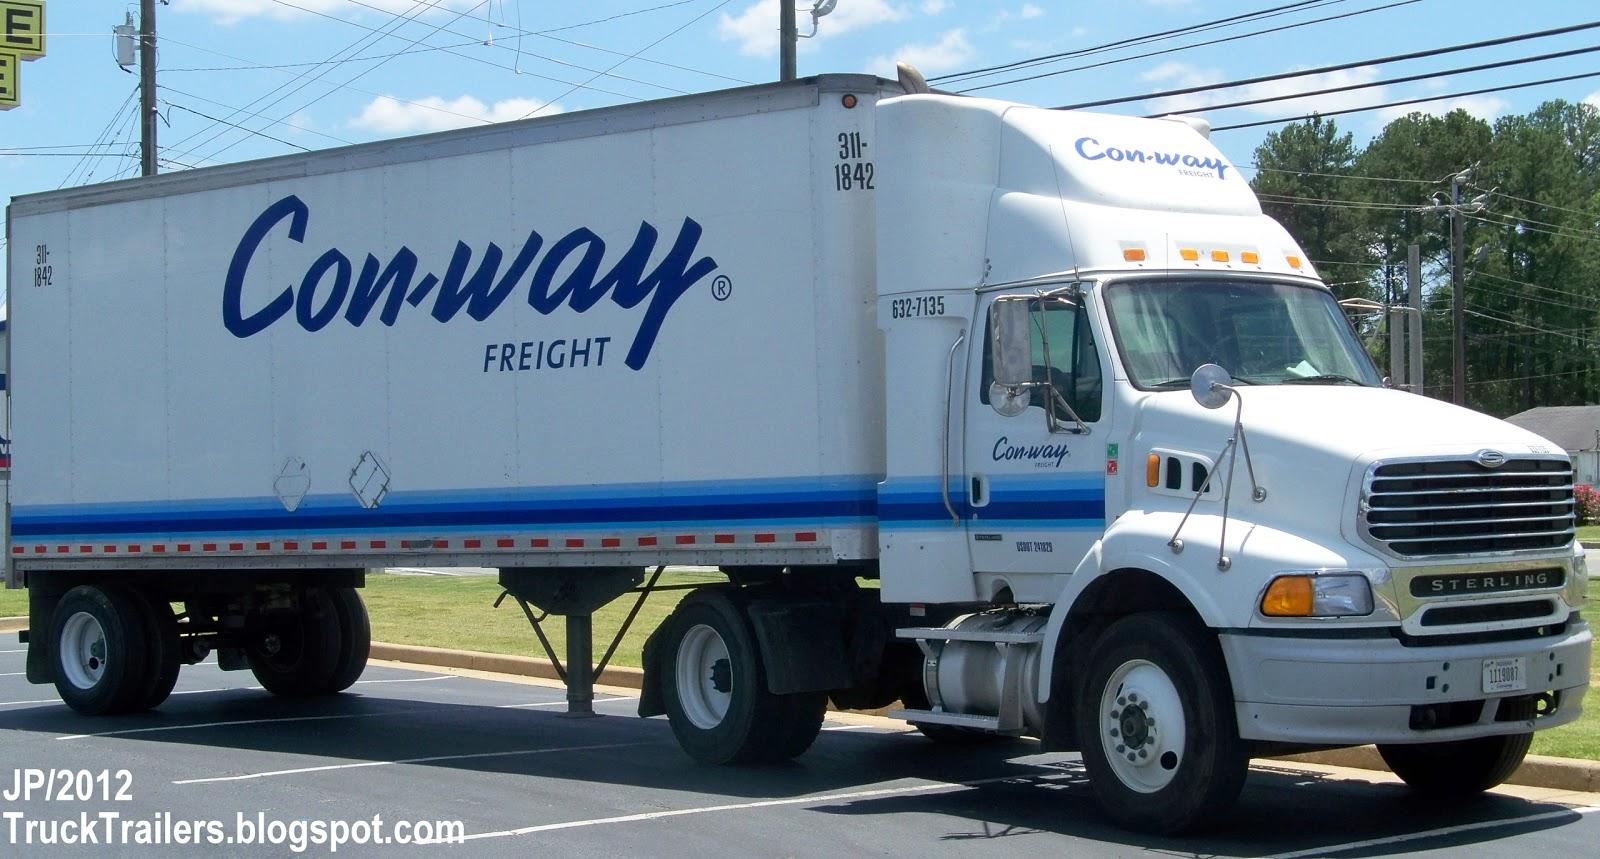 8169800a1 CON-WAY FREIGHT Trucking Company Ann Arbor Michigan, STERLING Day Cab  Truck, Con-way Freight Lines Sterling City Delivery Truck Georgia I-75